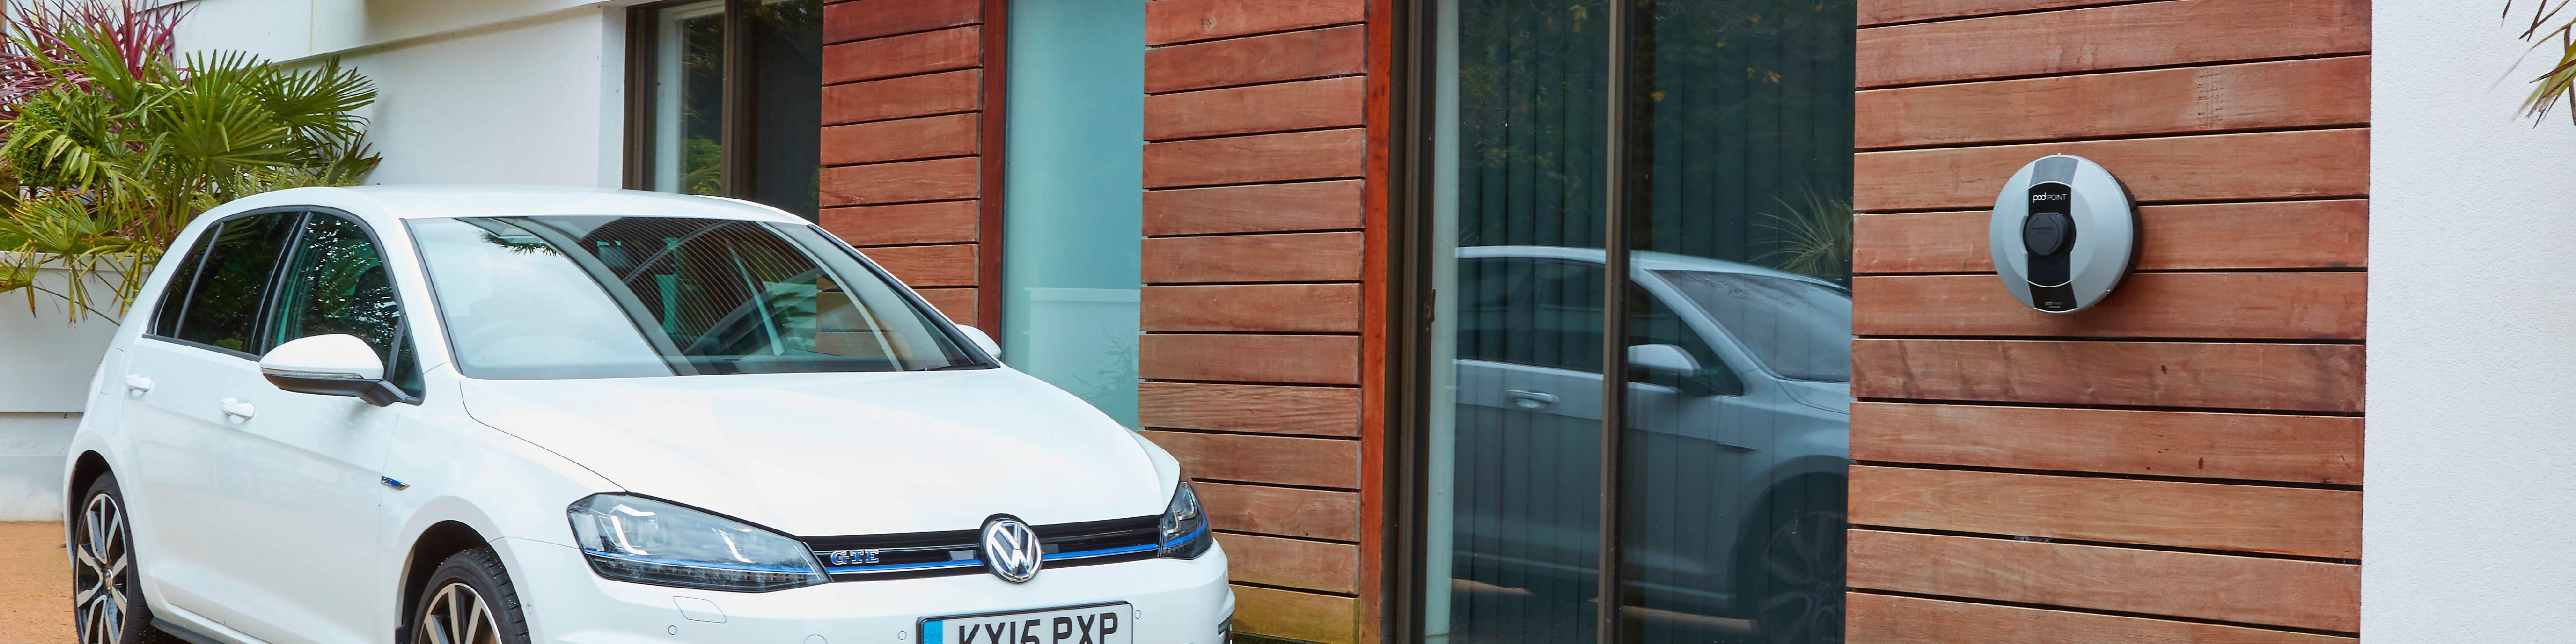 Preferred Supplier for VW Charging Stations in the UK